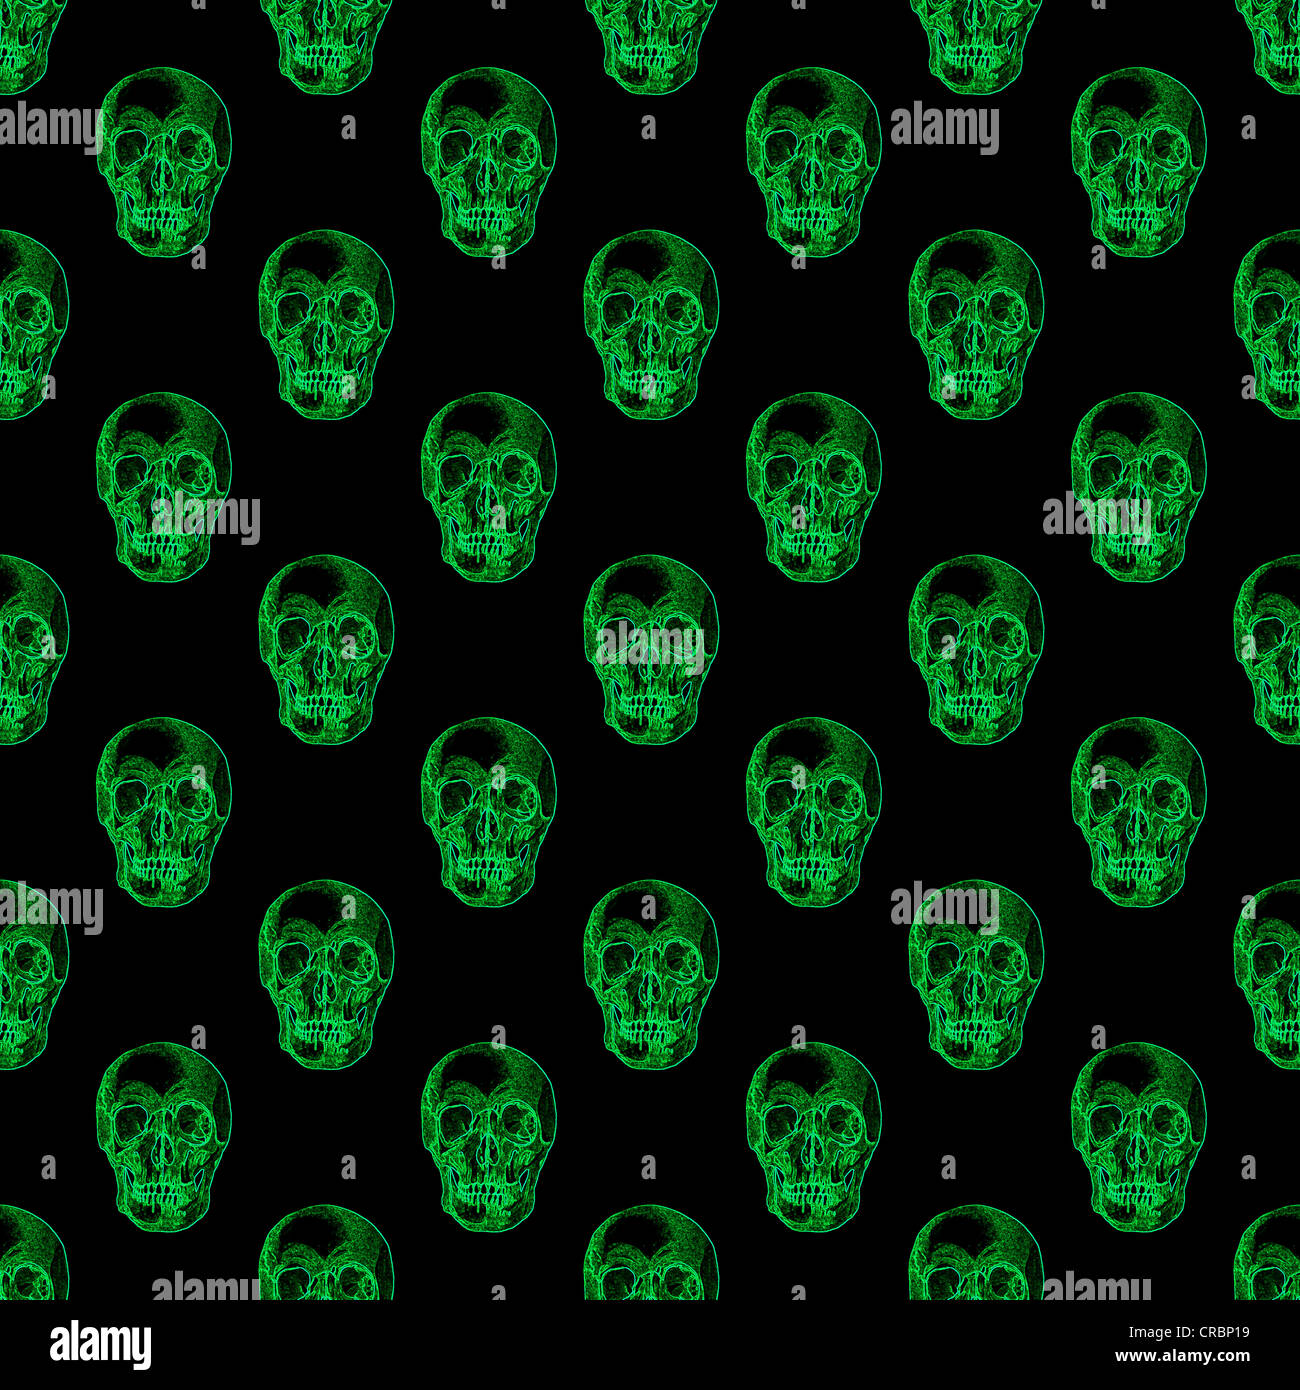 Repeat pattern of glowing green skulls on a black ...